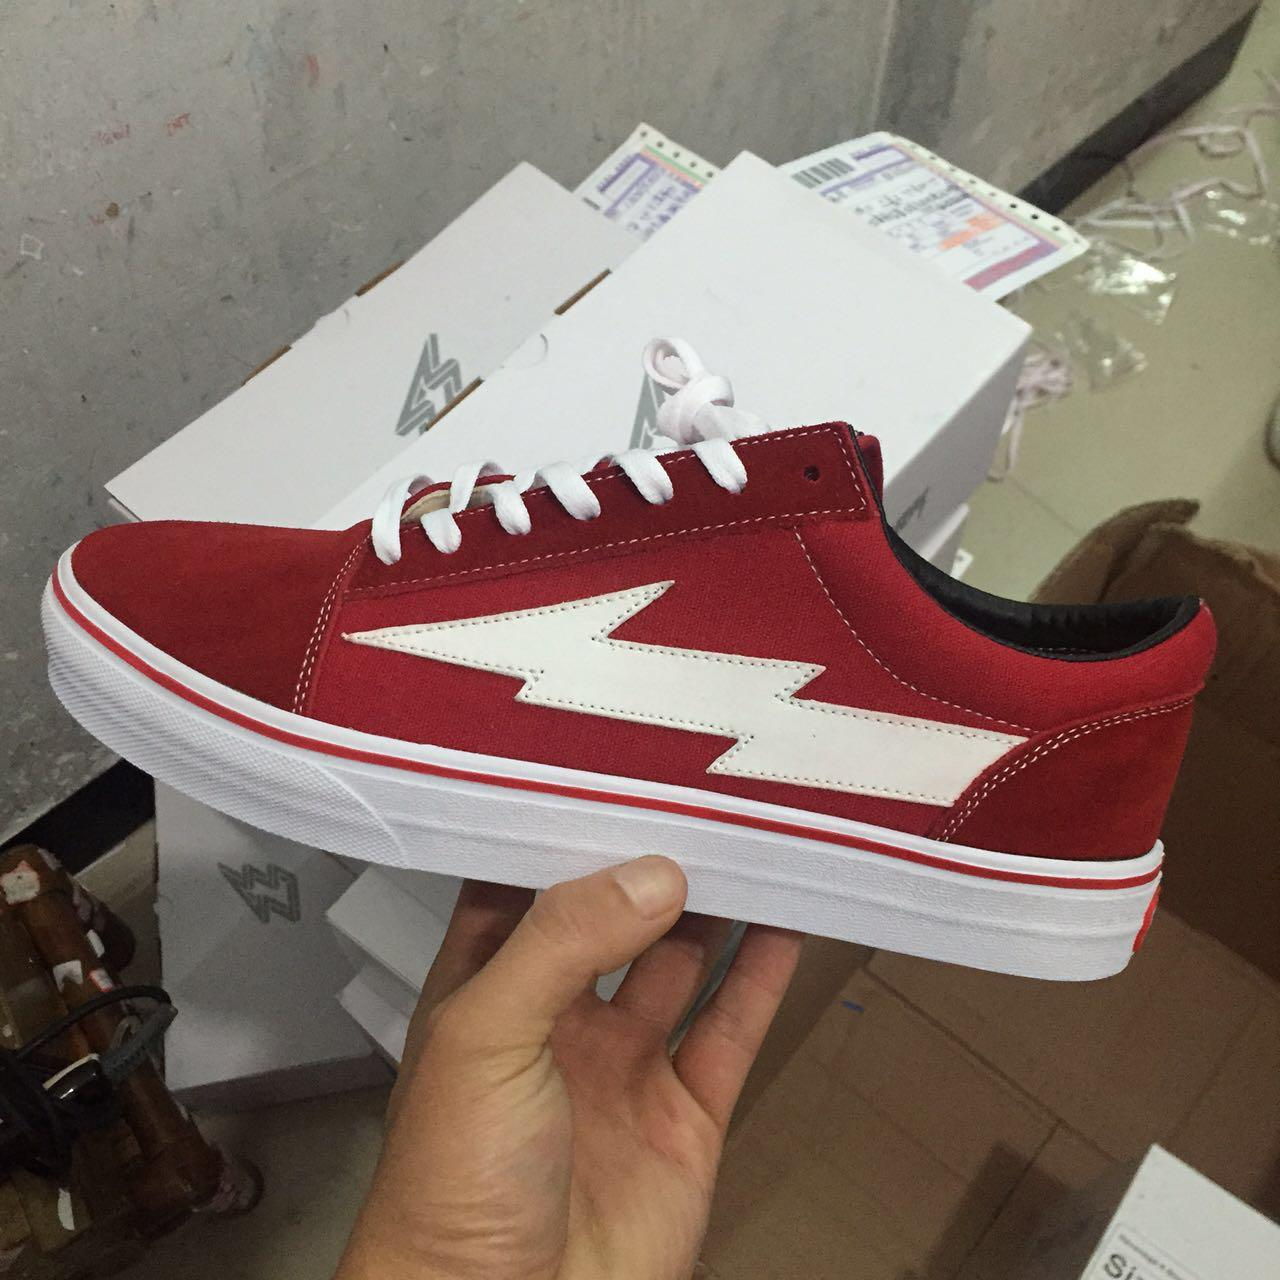 REVENGE x STORM NUOVO size36-45 New Unisex Low-Top High-Top Adult Men \\ 's Canvas Shoes 2 colori Stringato Casual Scarpe Sneaker scarpe red2019